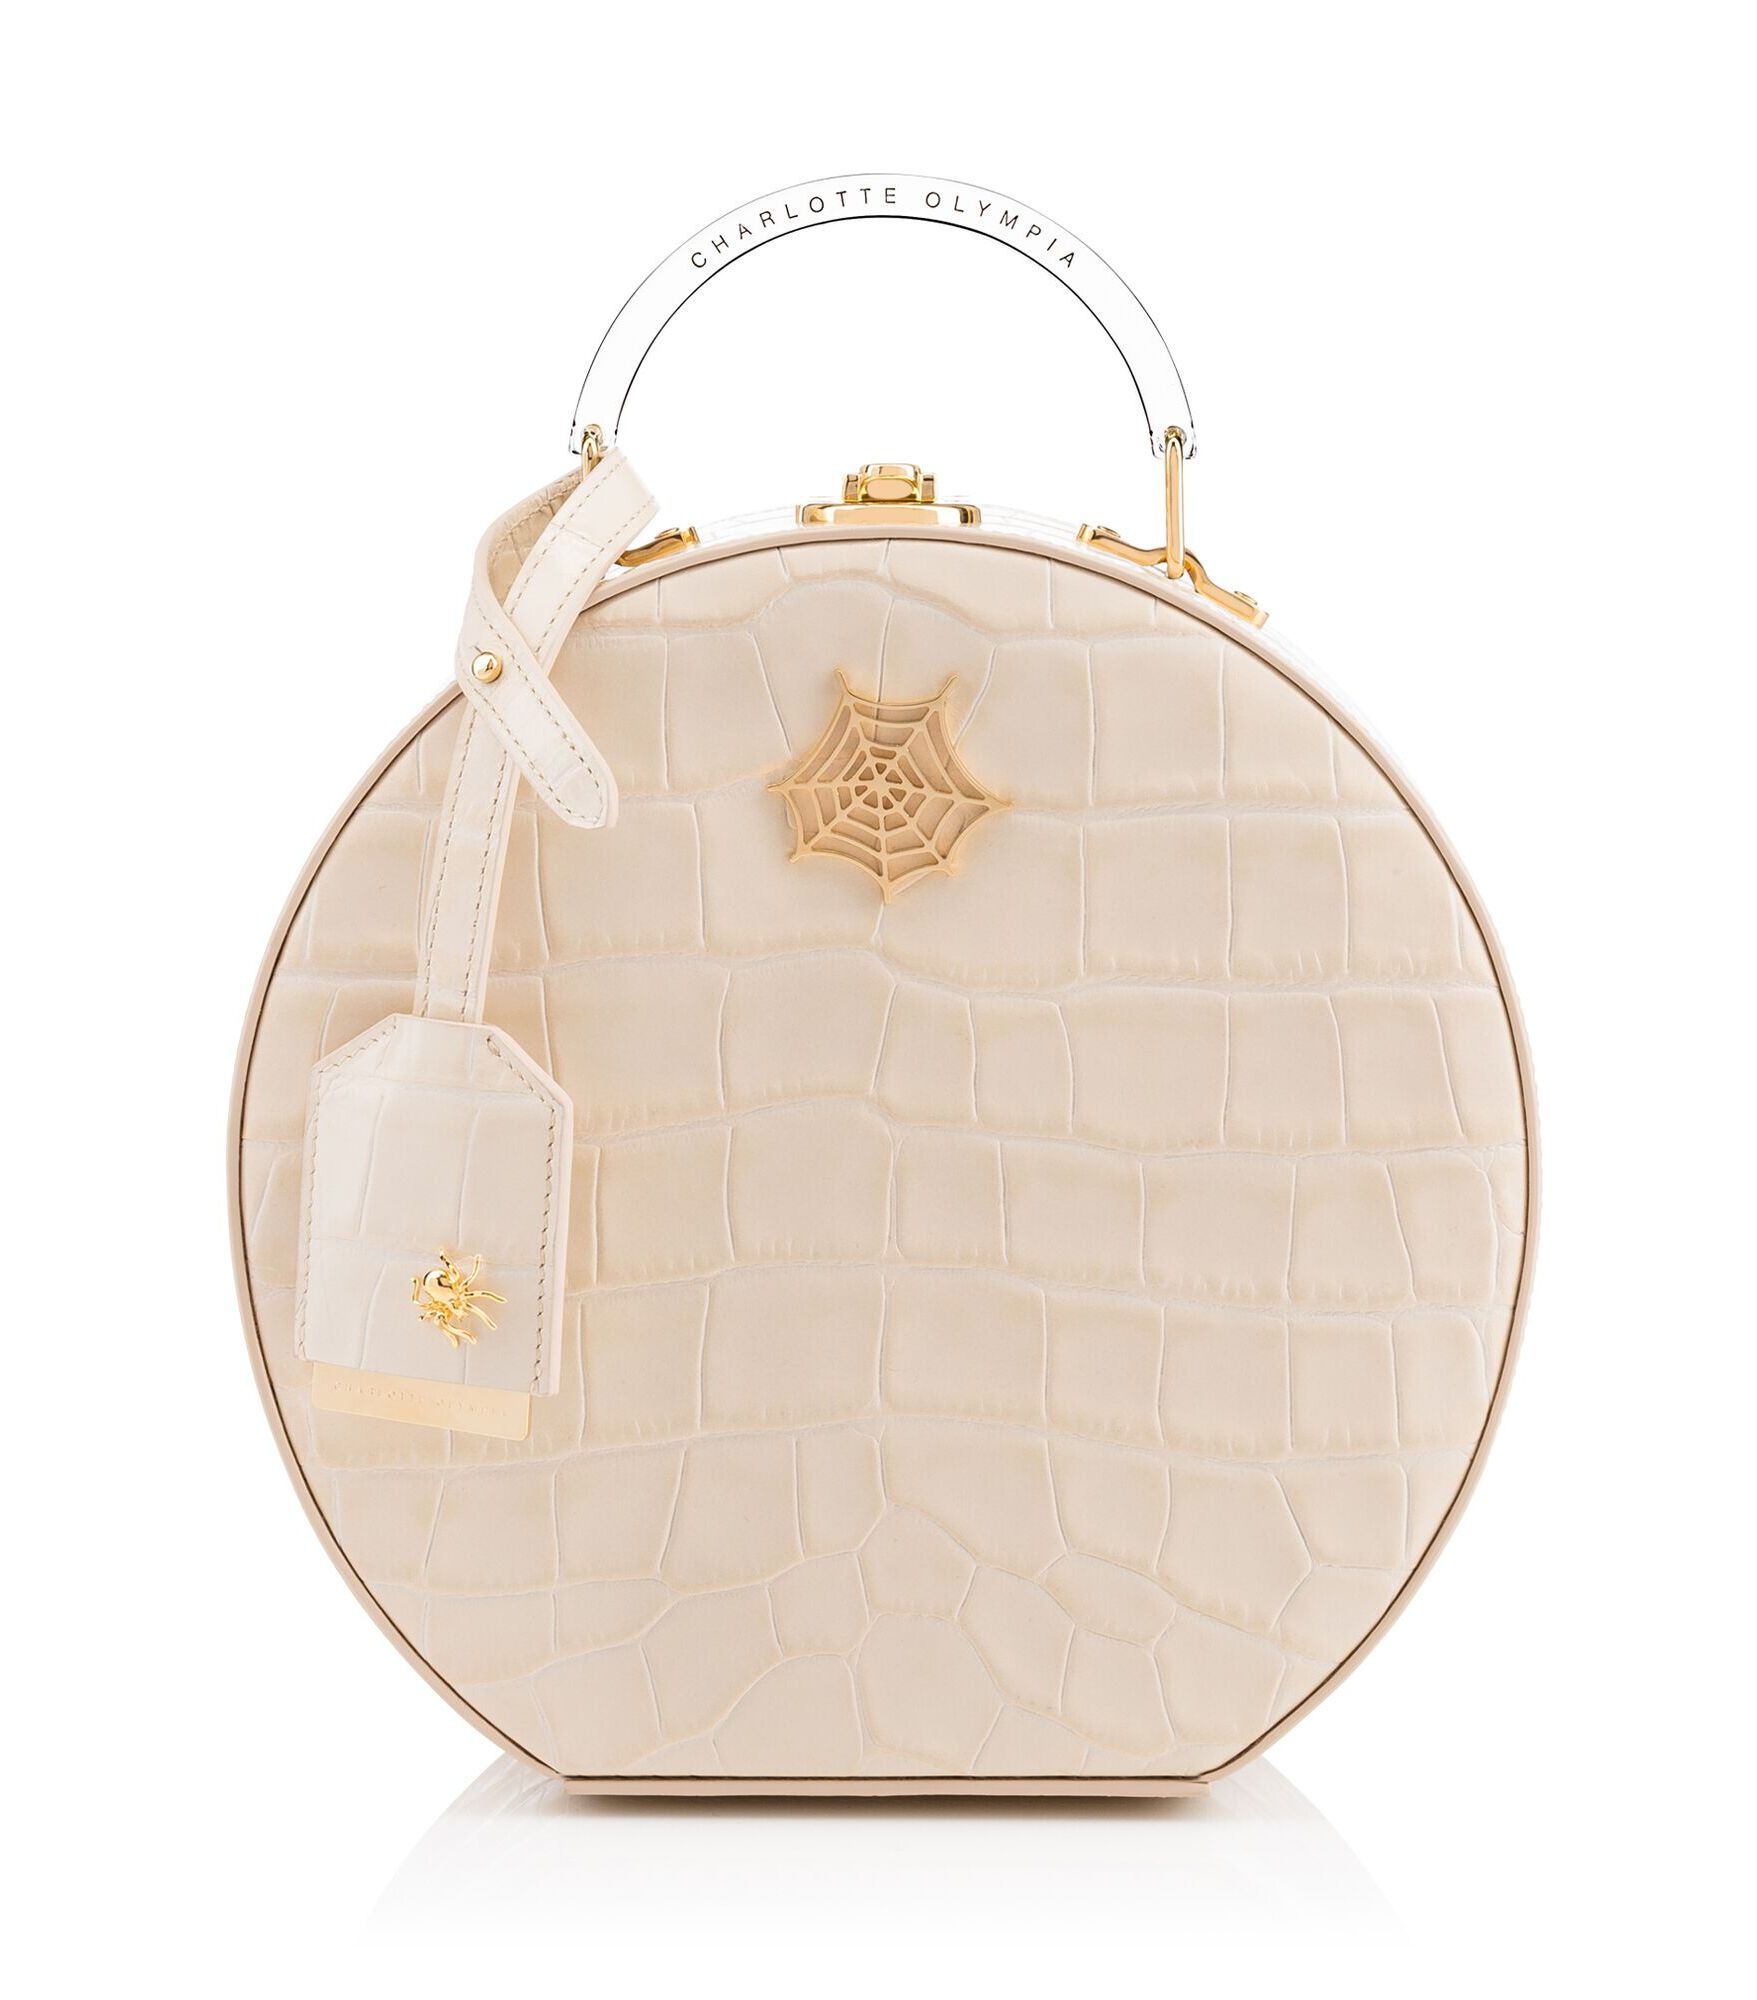 Charlotte Olympia Leather Bags Women - ATKINSON OFF WHITE Croc embossed calfskin OS